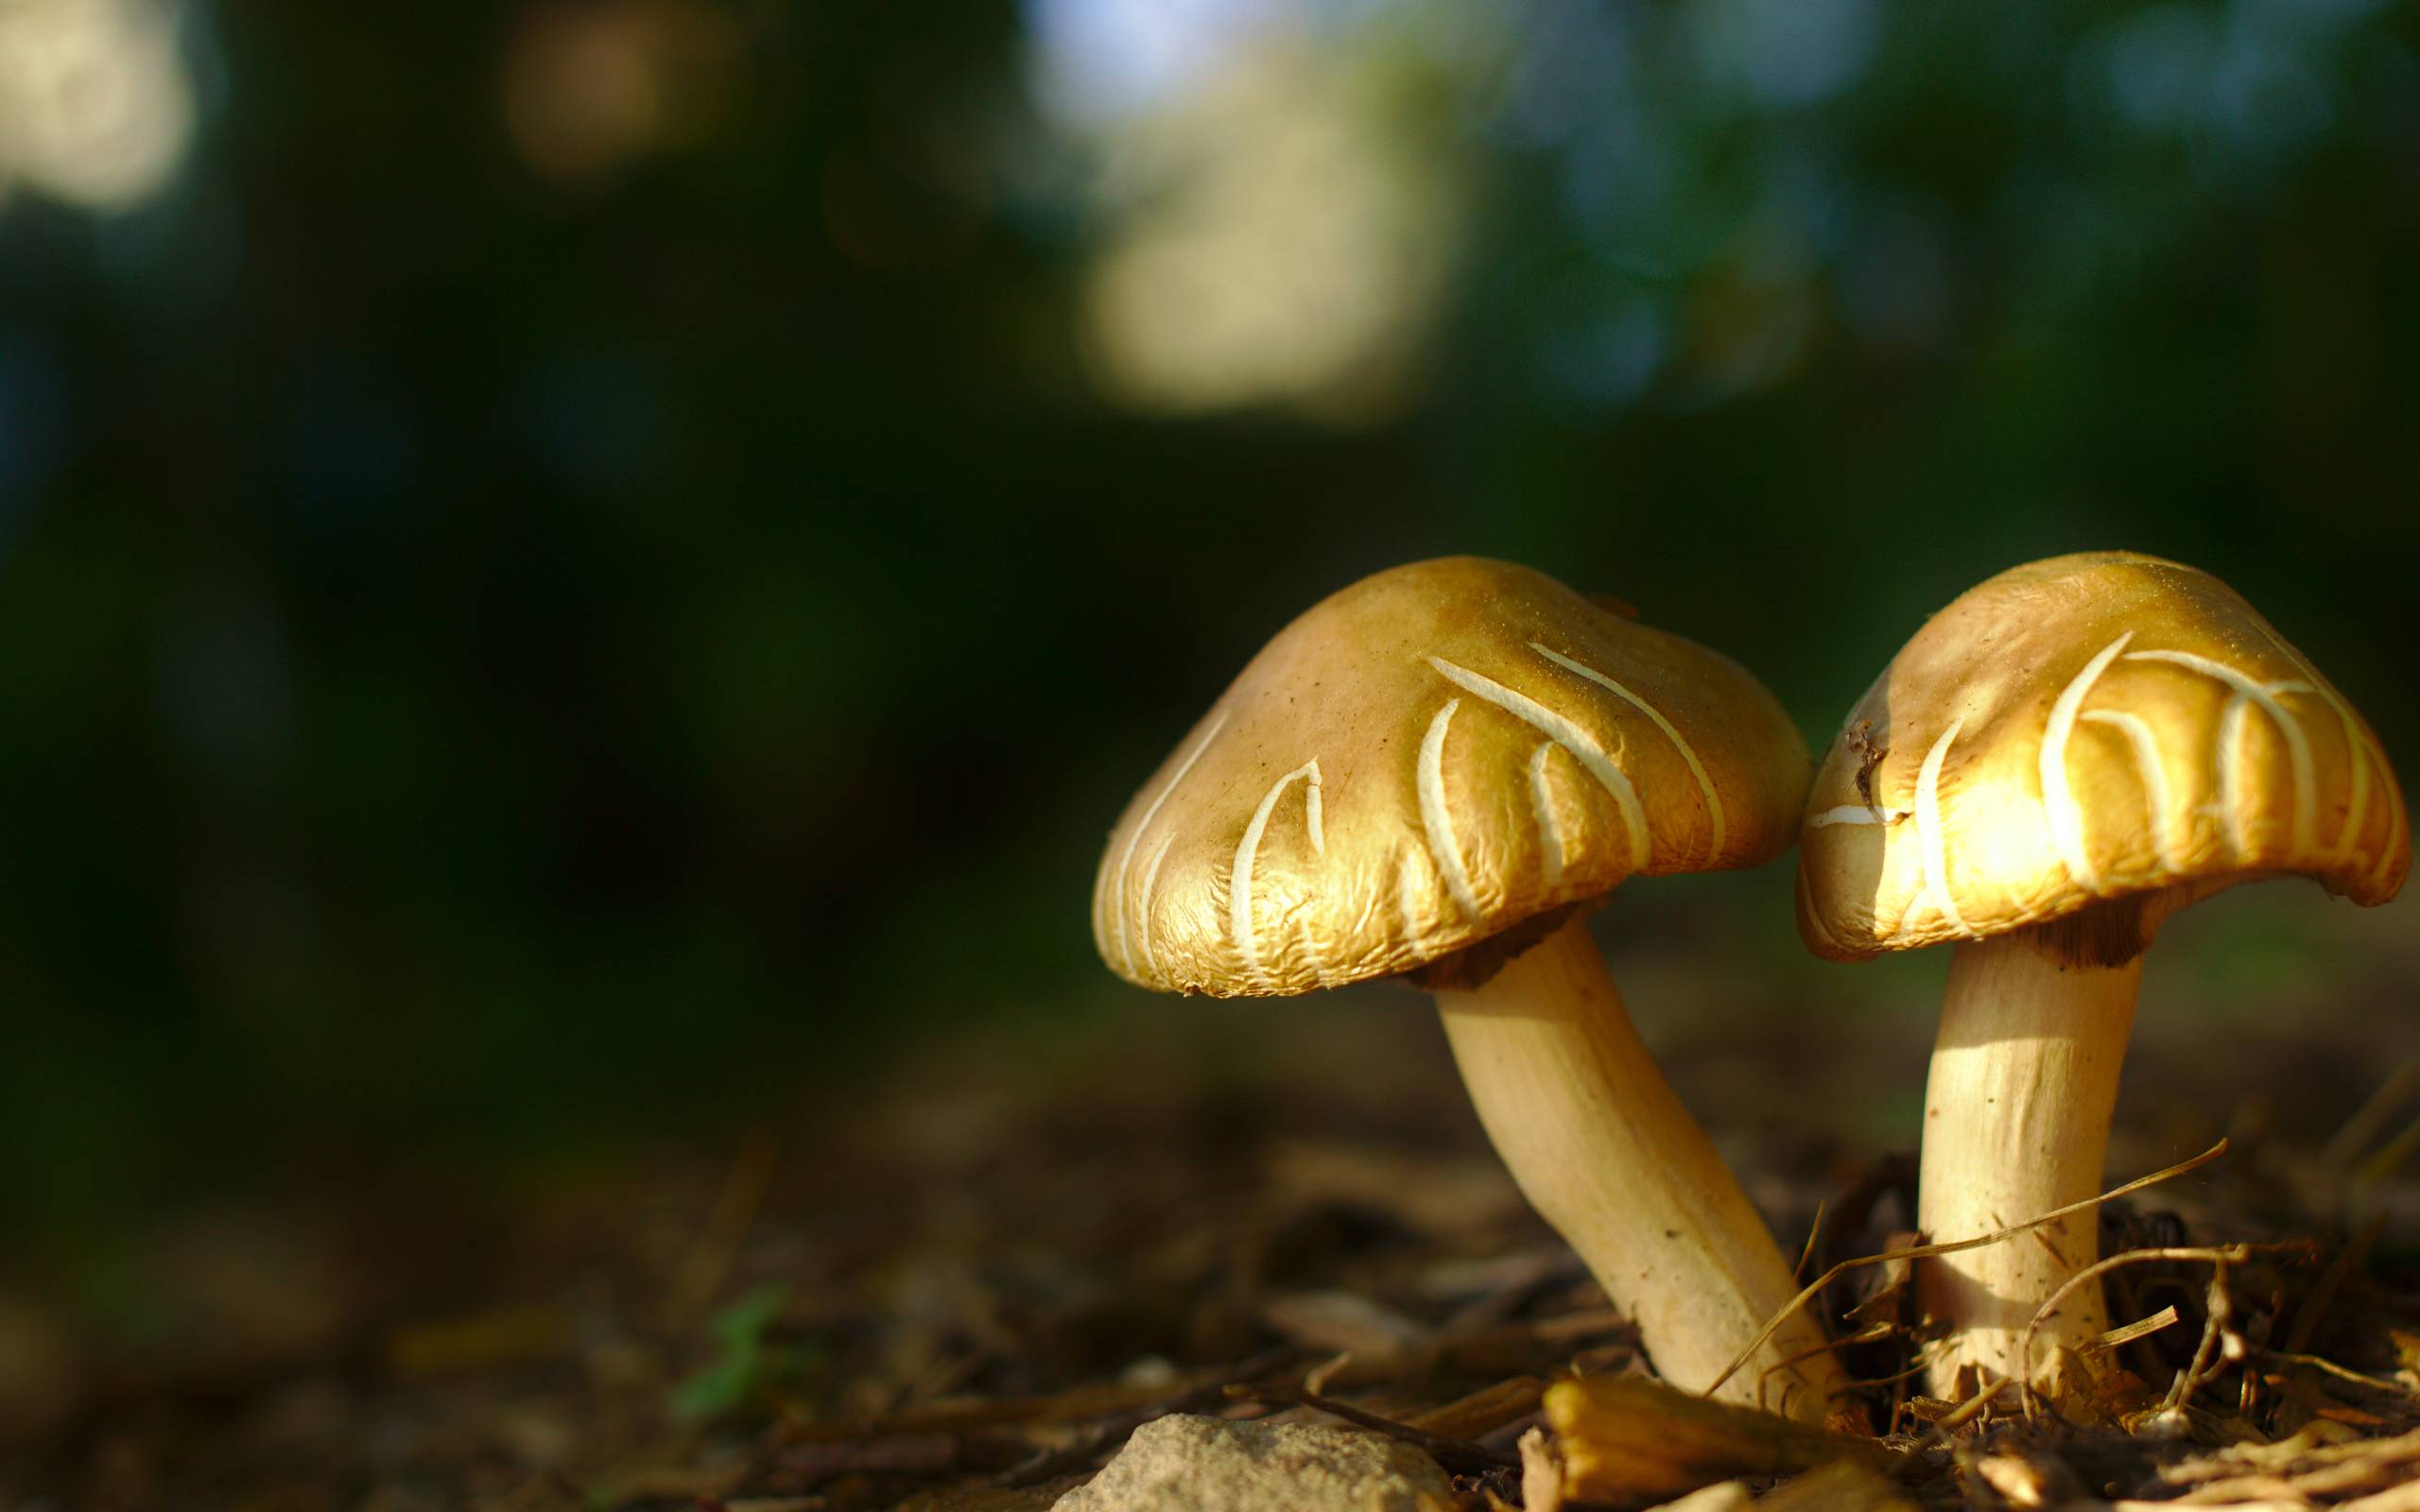 Backyard_Mushrooms_by_Kurt_Zitzelman